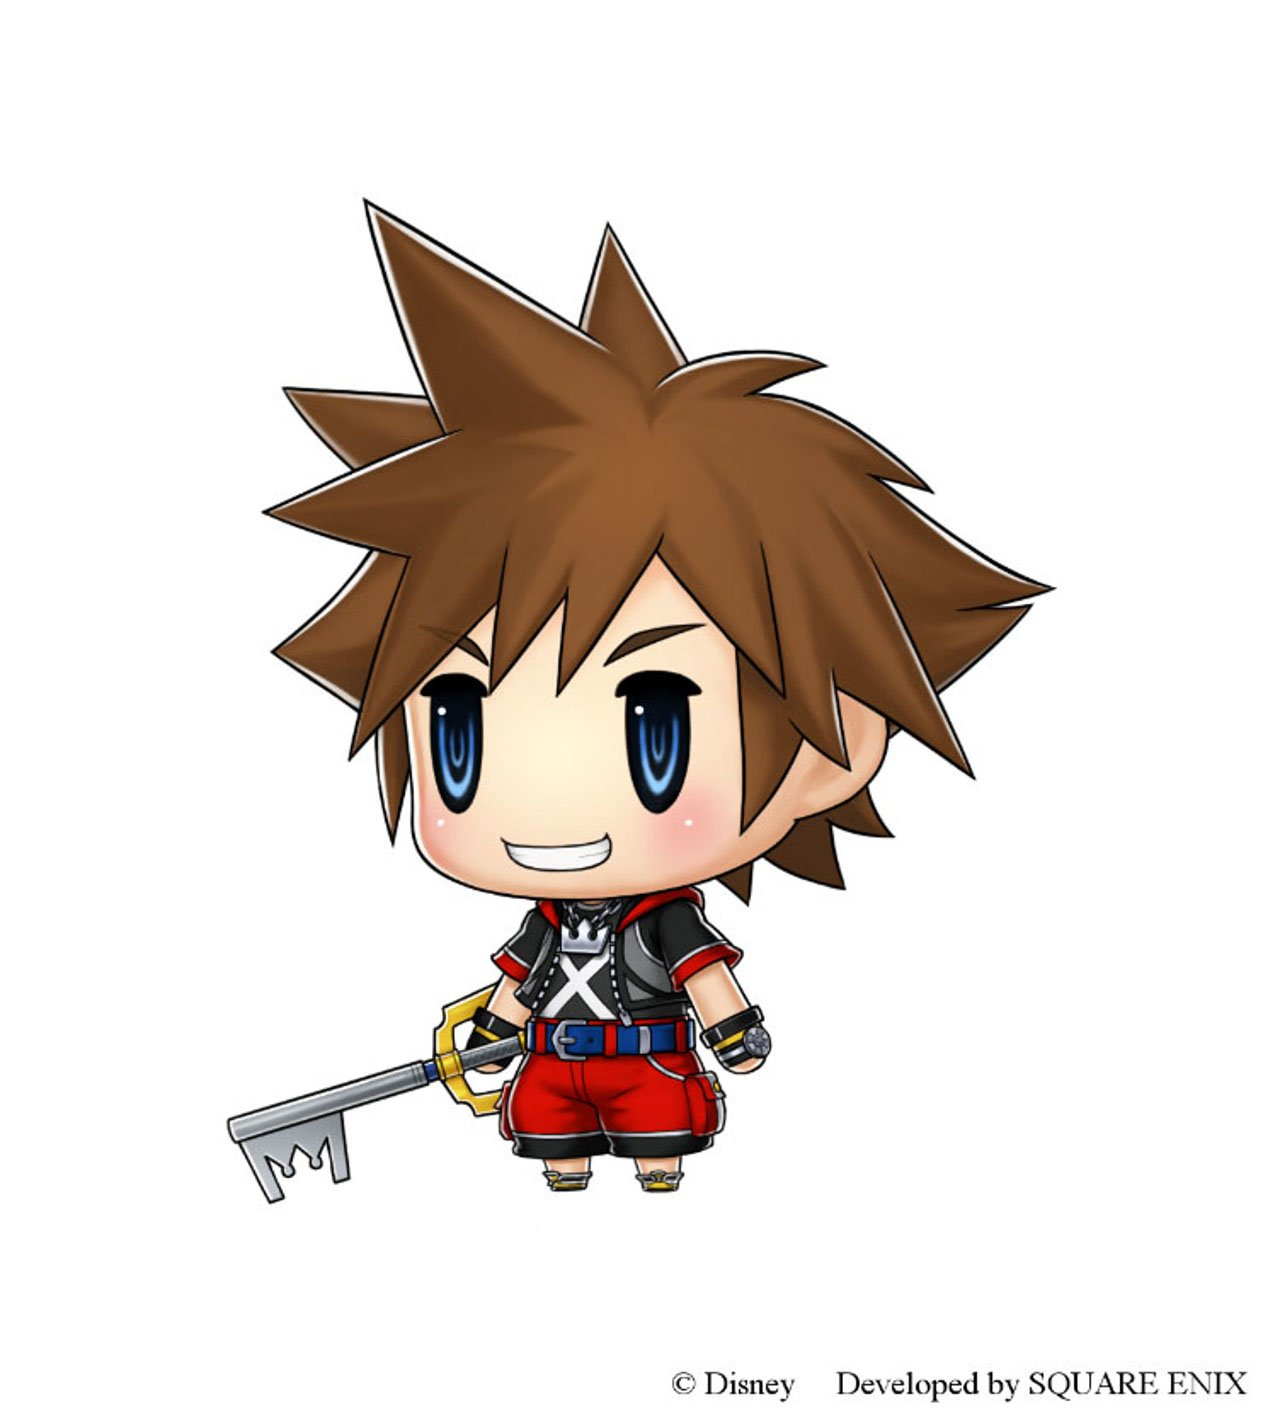 World of Final Fantasy: Sora di Kingdom Hearts sarà un DLC gratuito